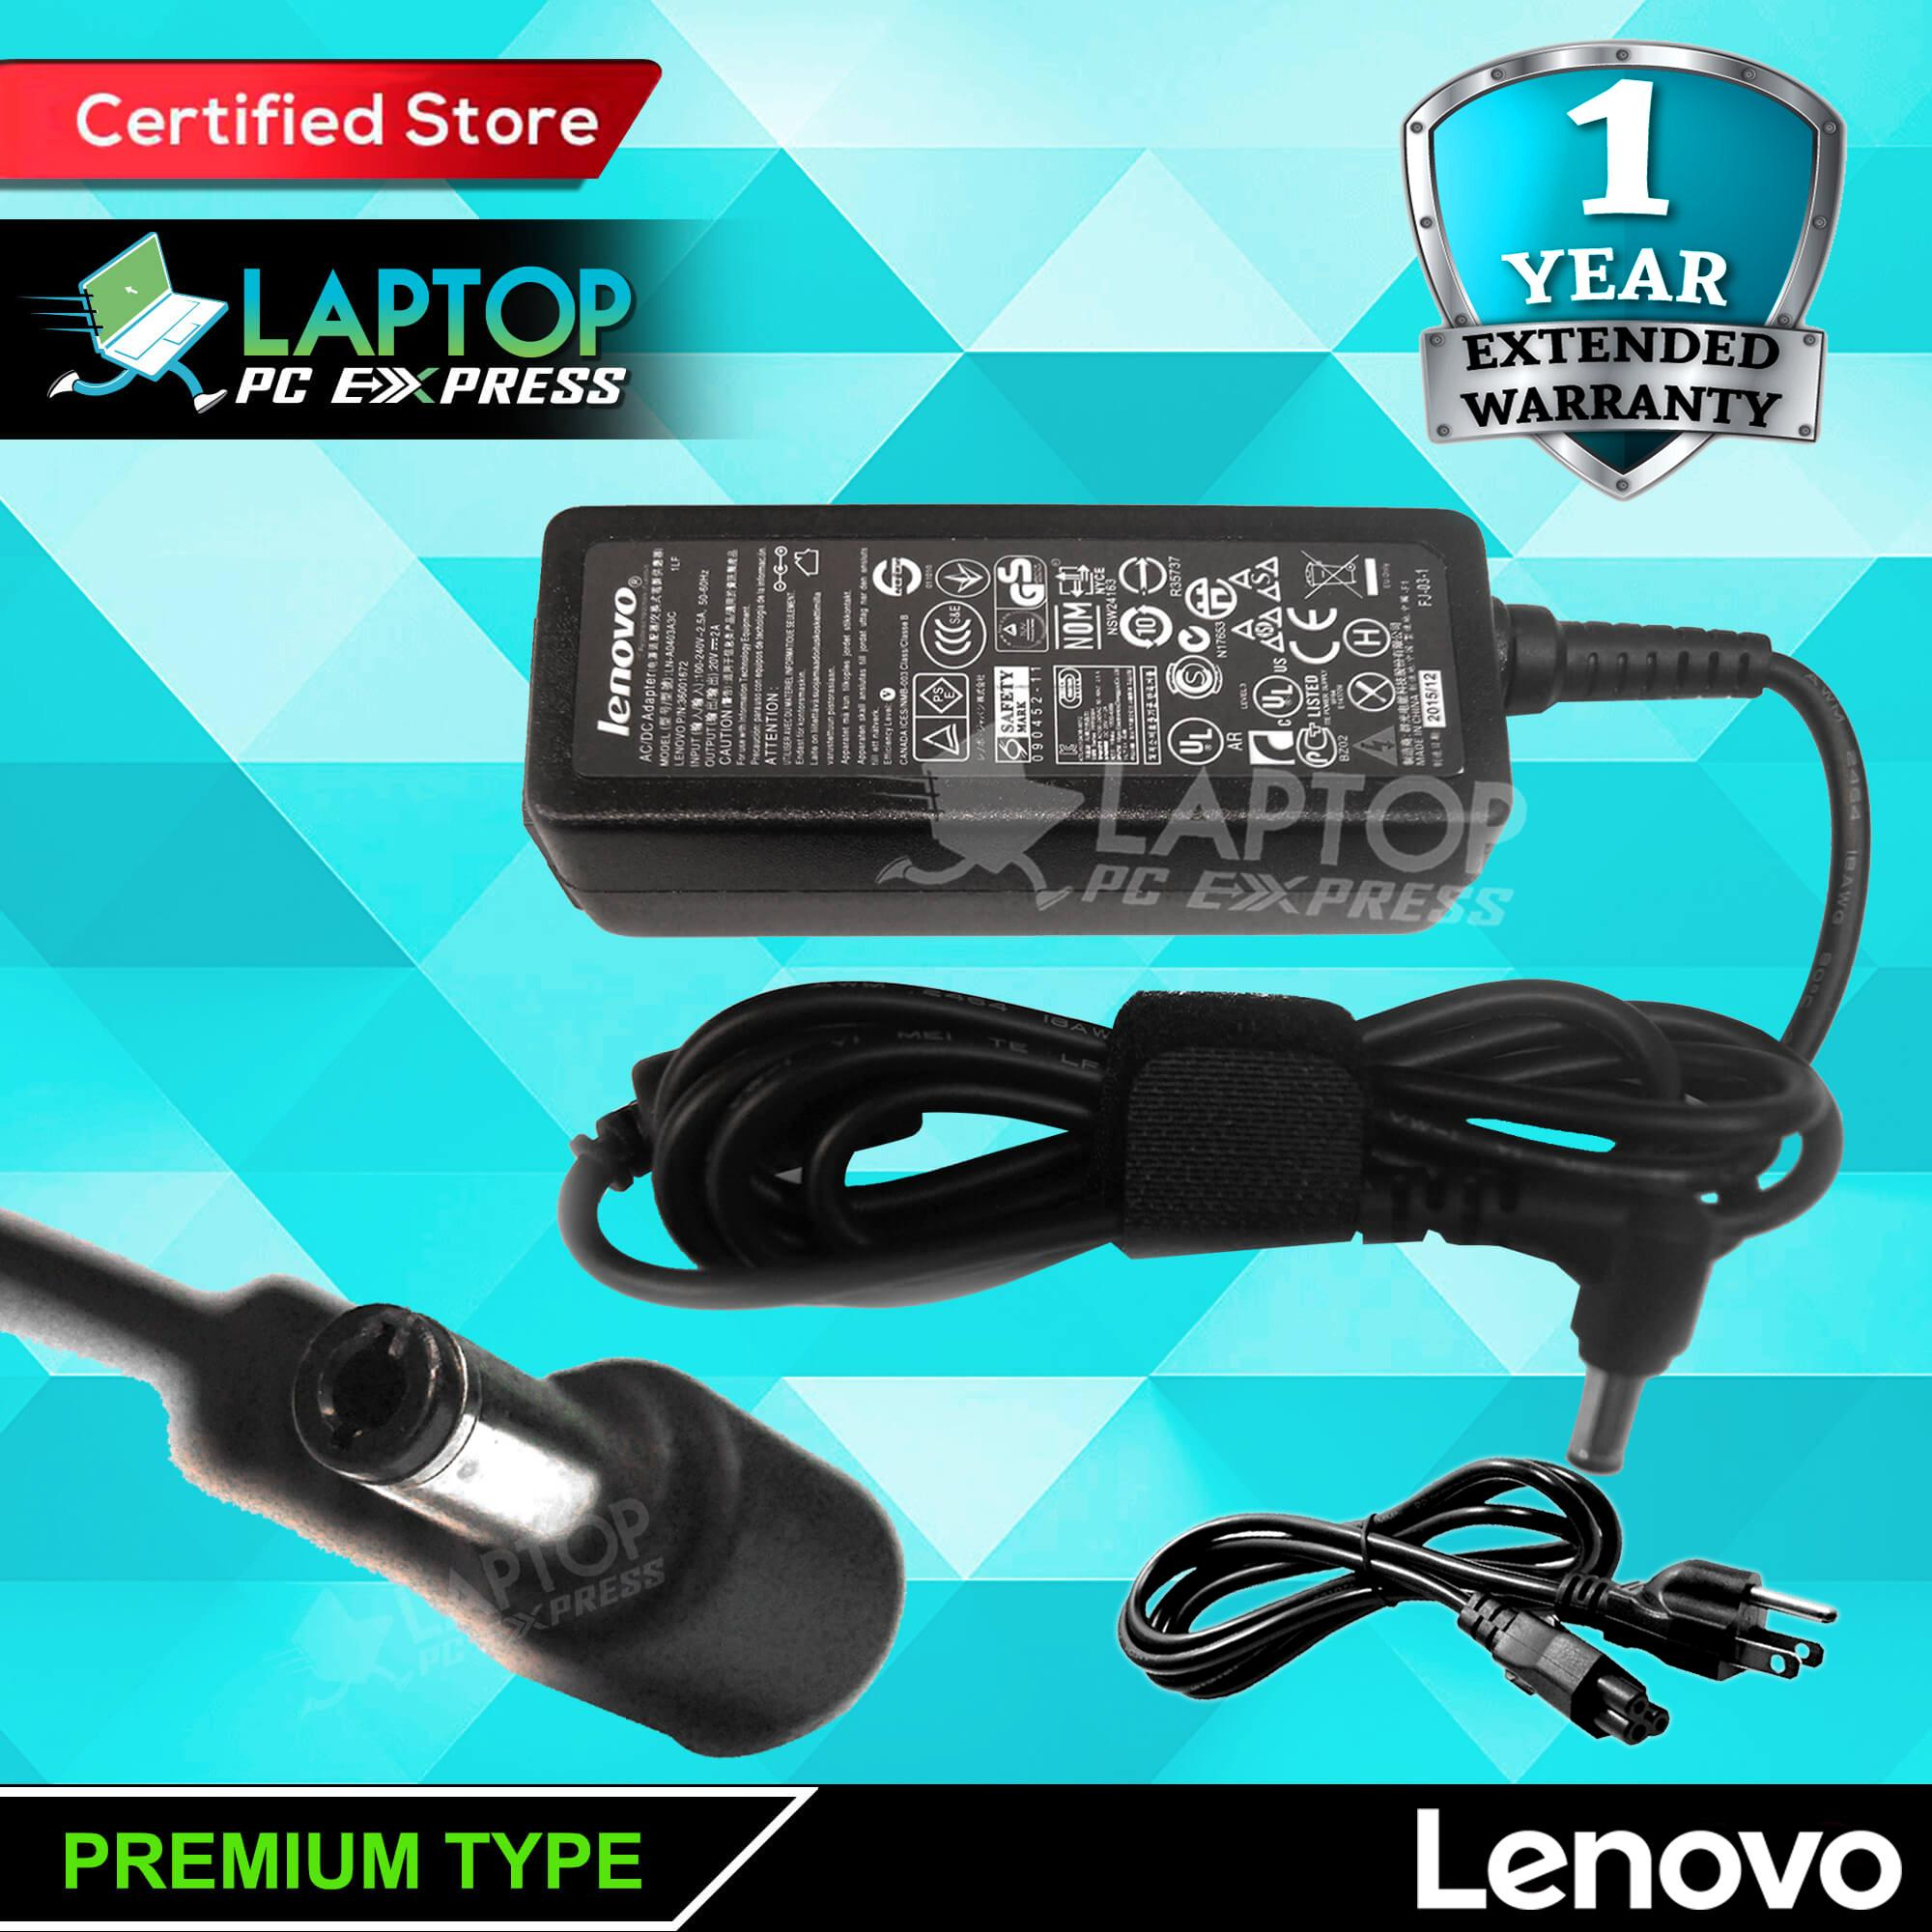 Lenovo Laptop Charger 20V 2A Lenovo IdeaPad S9 series Lenovo IdeaPad S10  series 55Y9361, 55Y9370, 36001648, 36001608, 36001606, 36001672, 36001653,